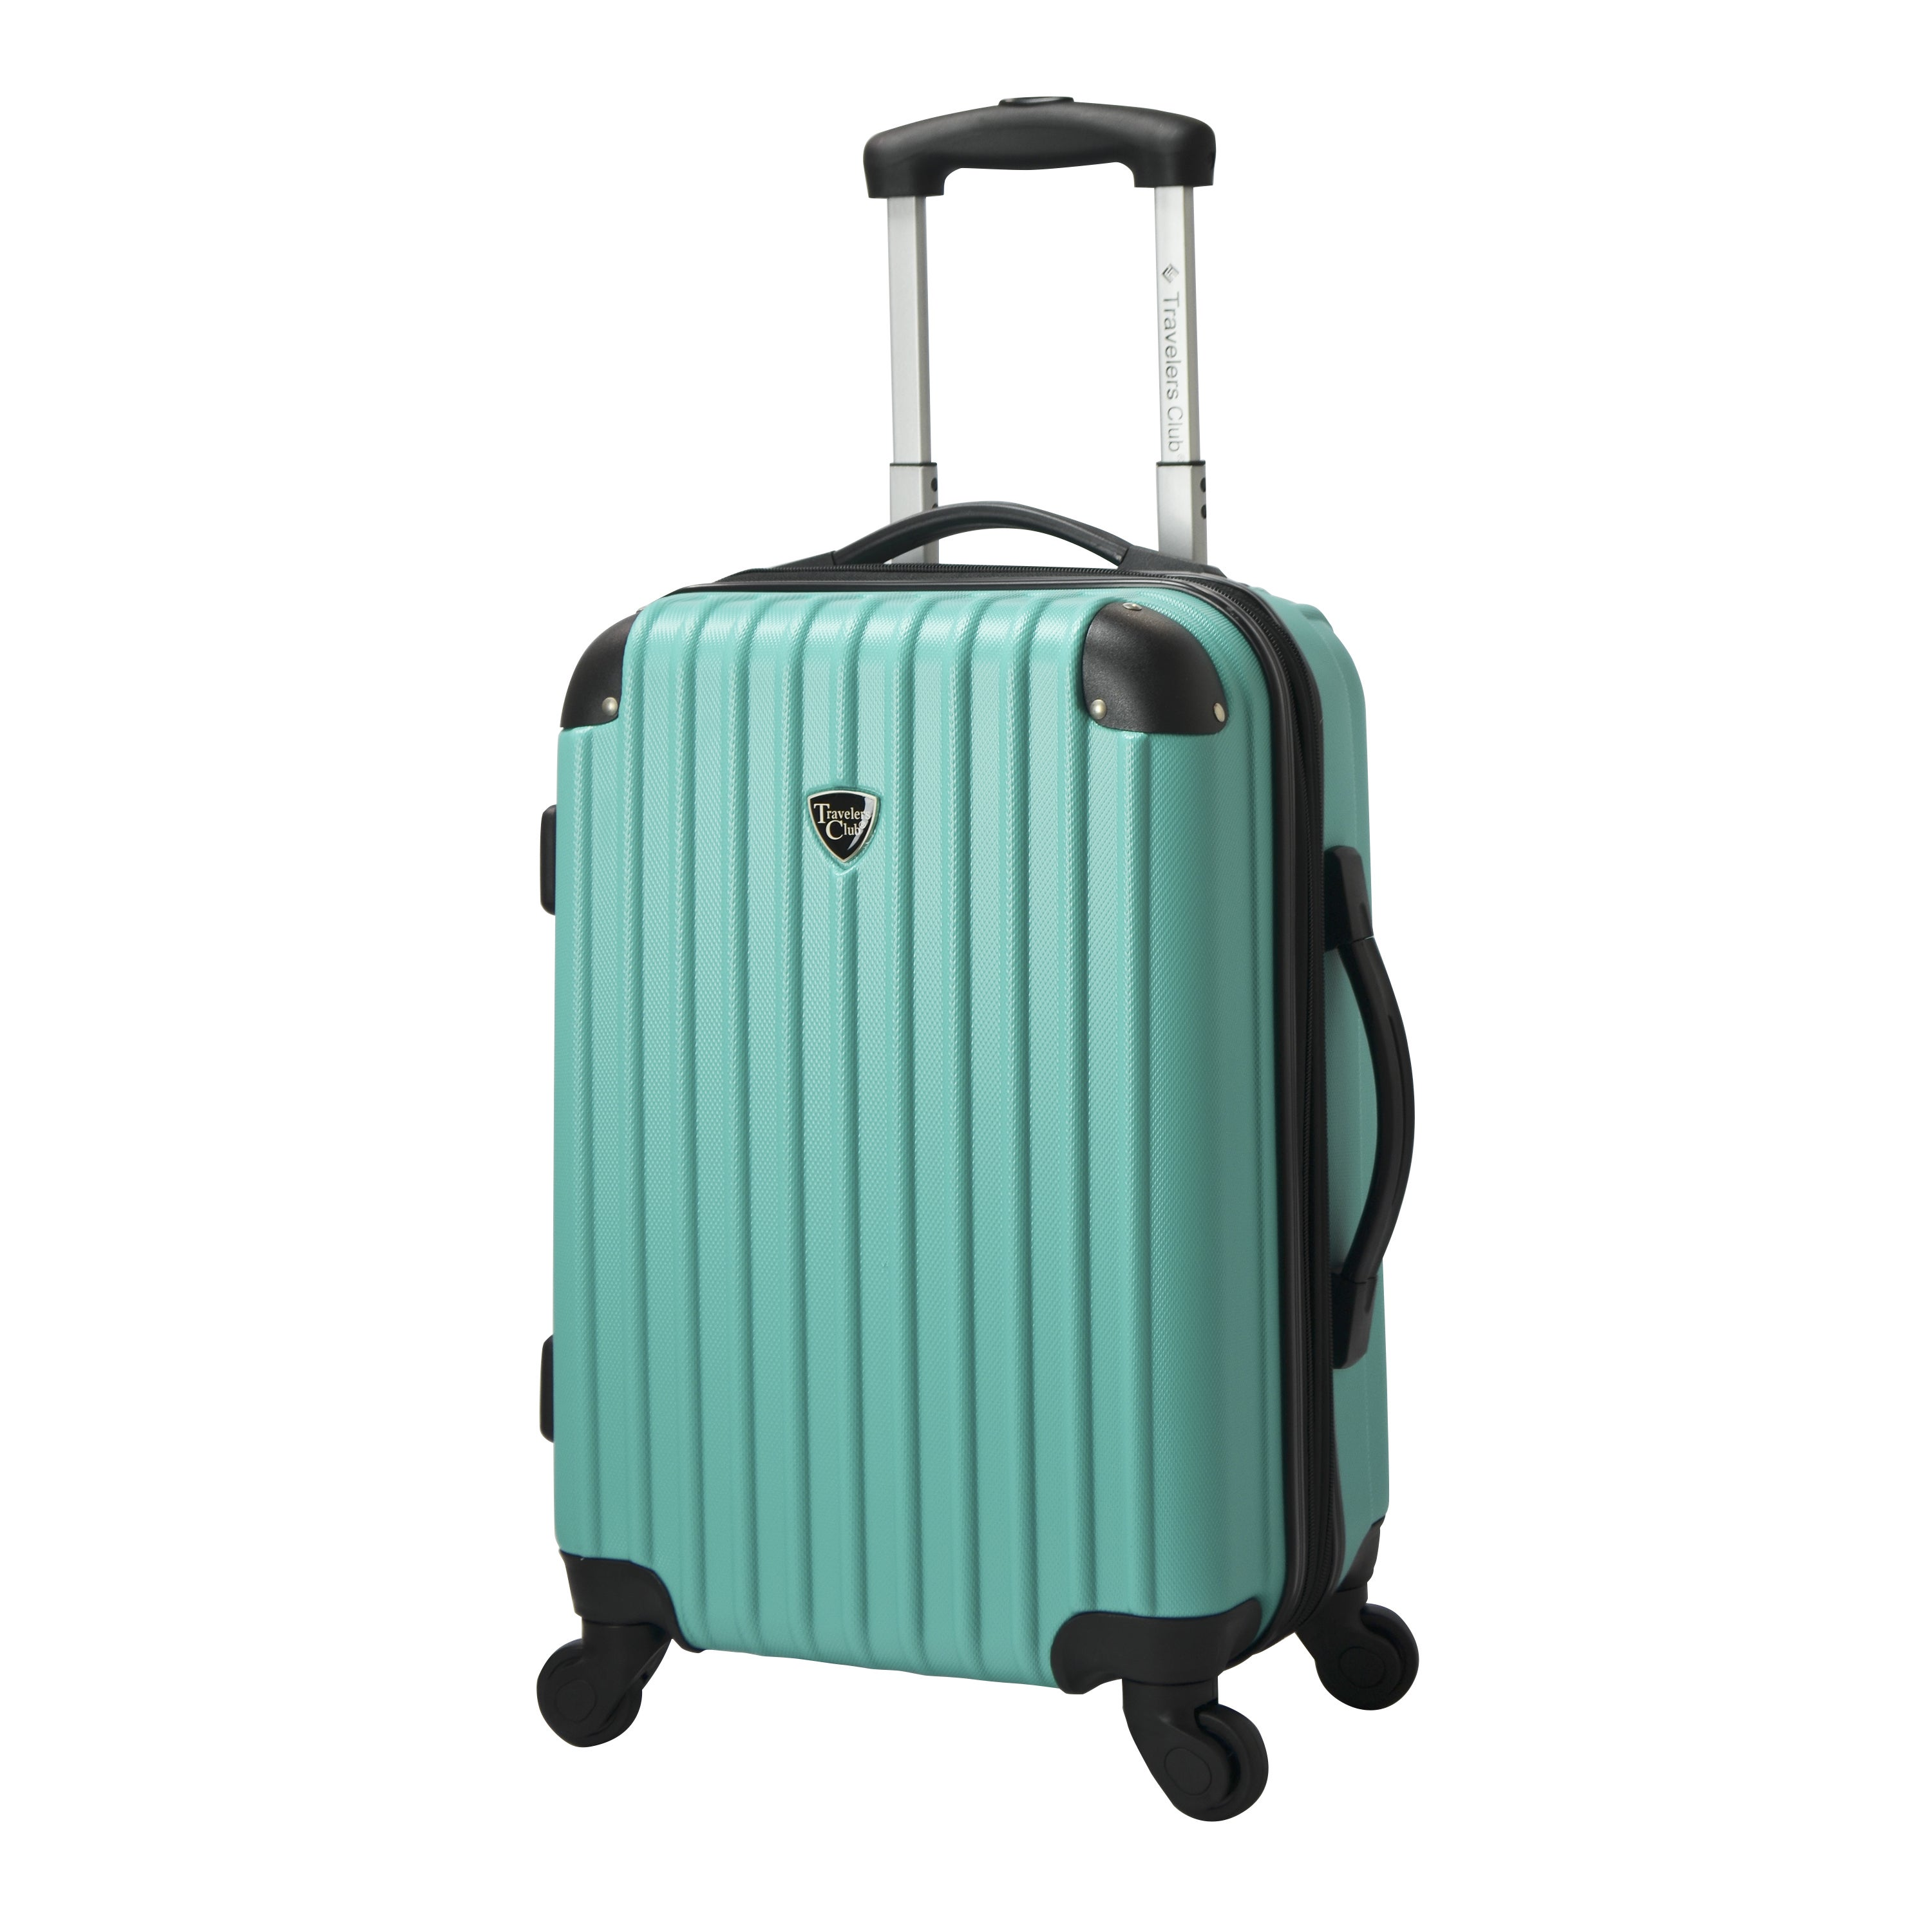 Top Product Reviews for Travelers Club Madison ABS 20-inch ...